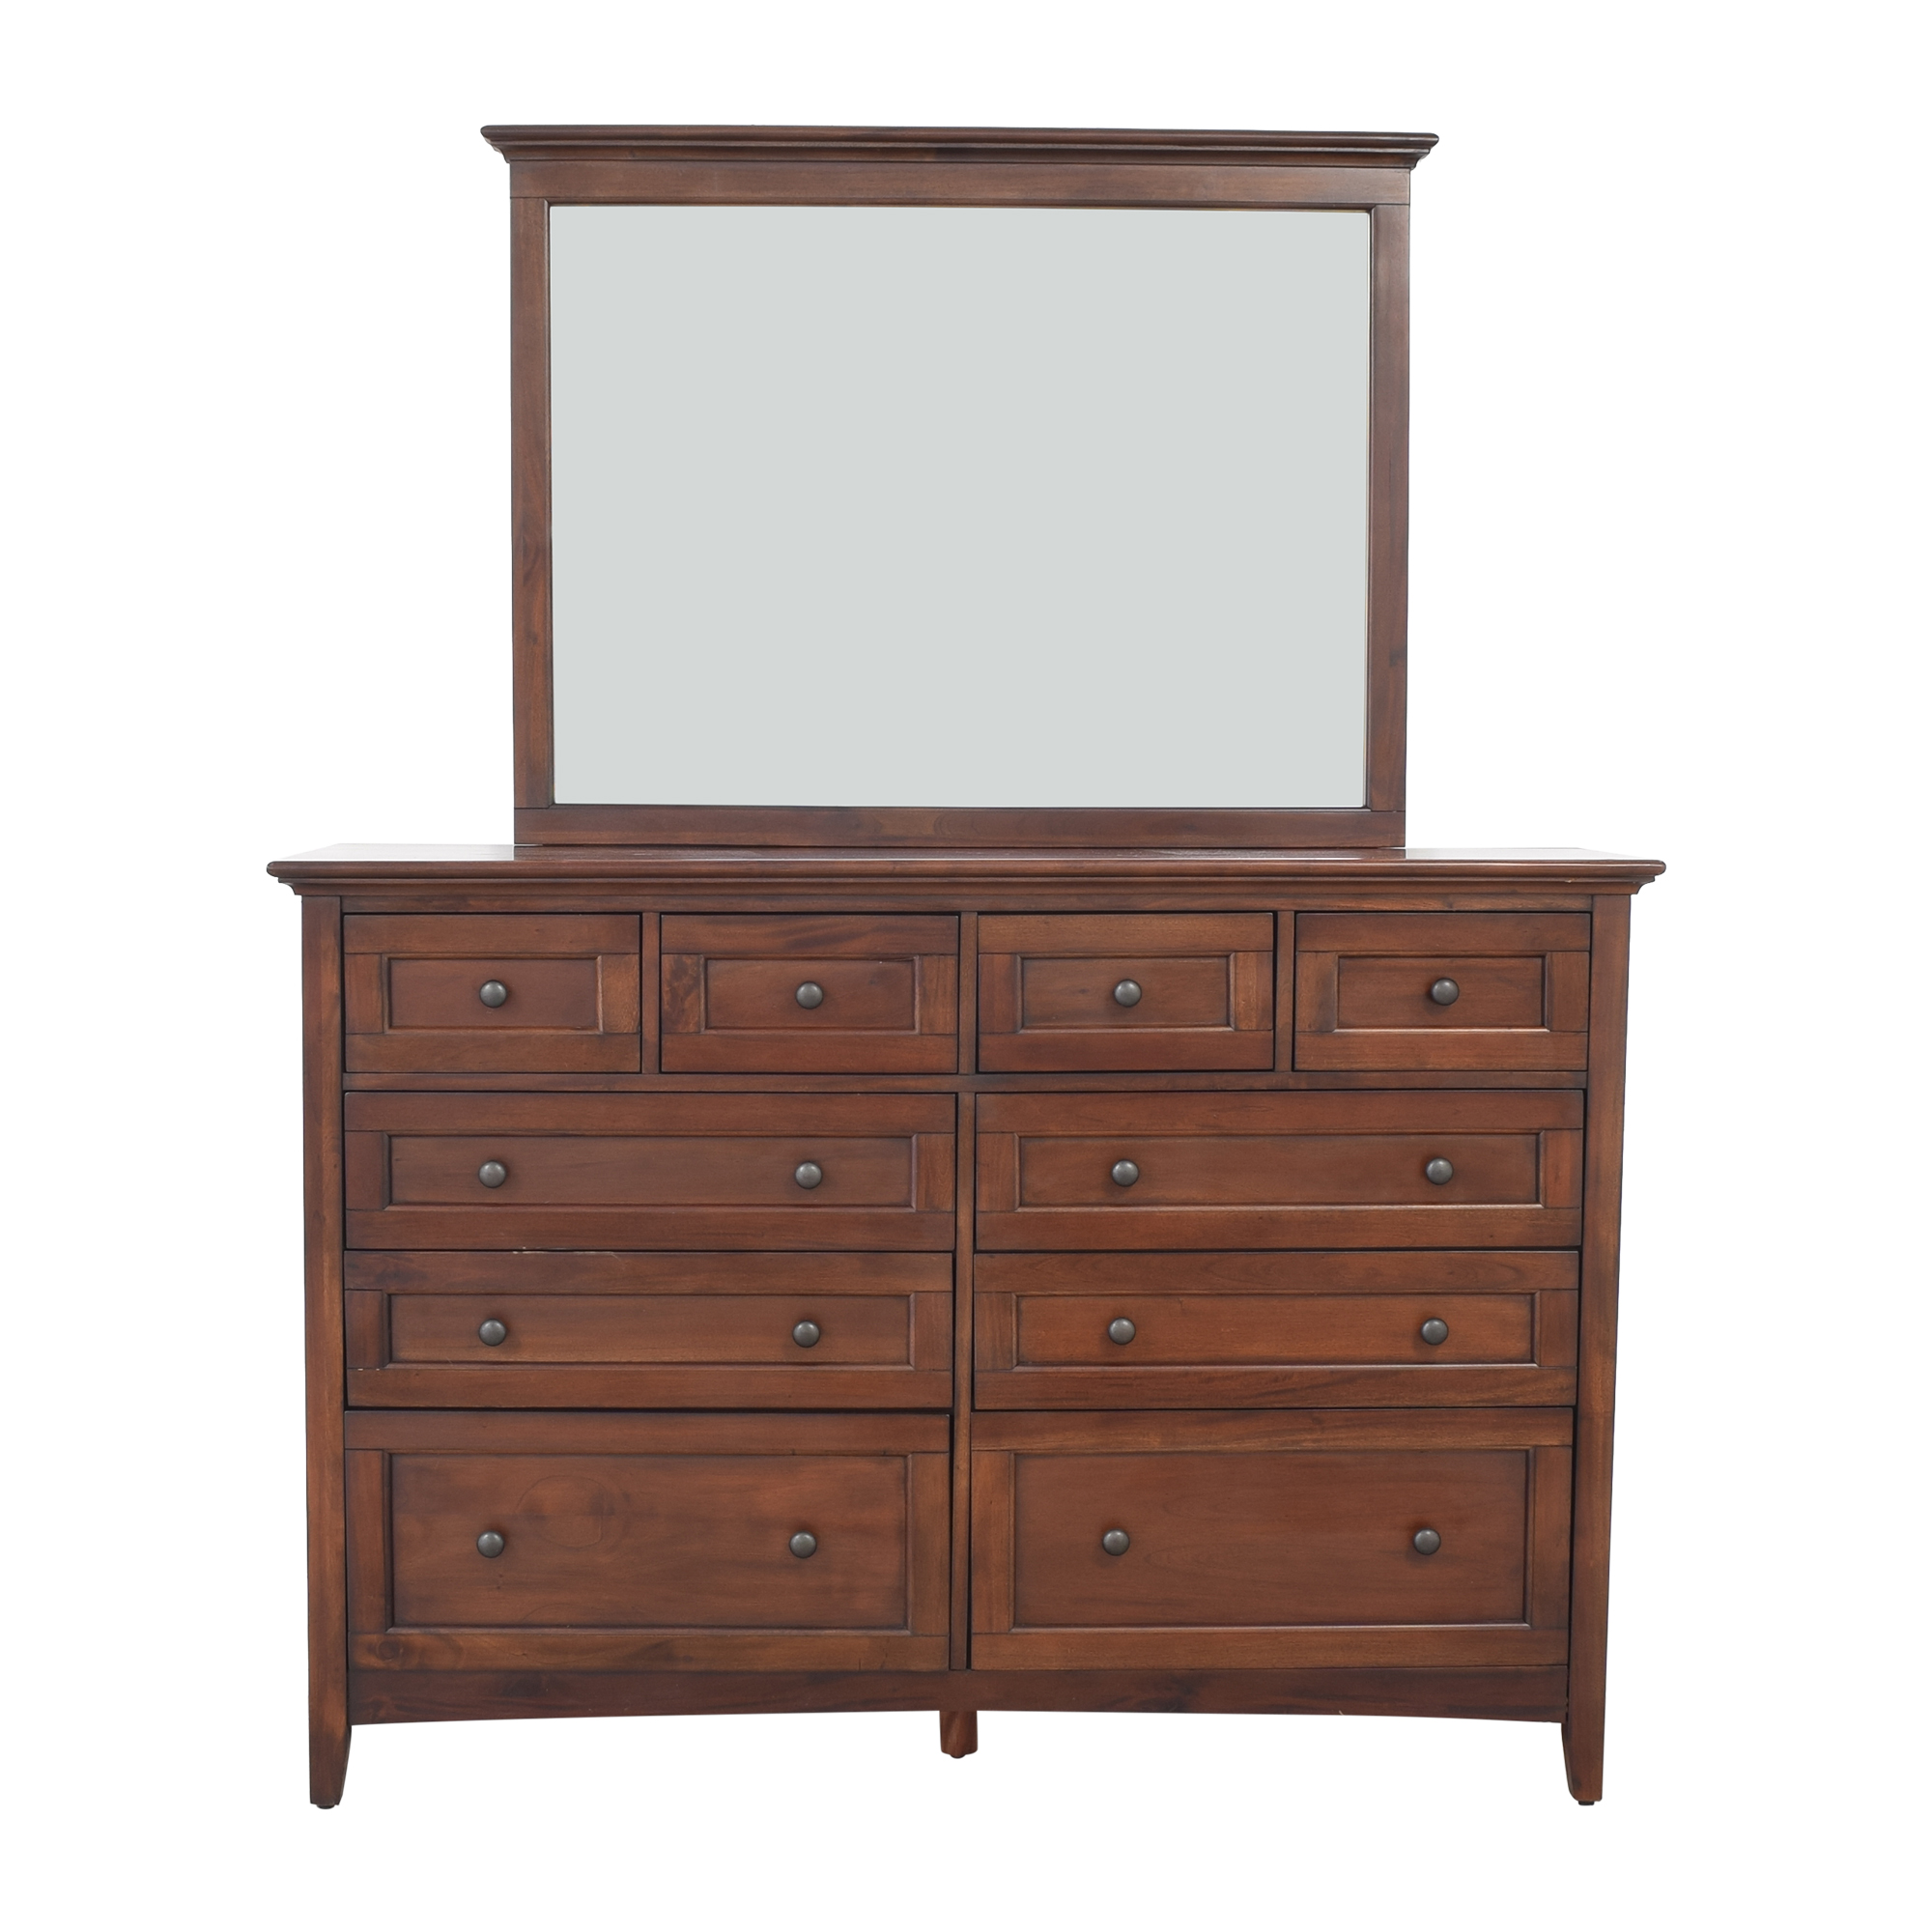 shop A-America Westlake Master Dresser with Mirror A-America Wood Furniture Dressers